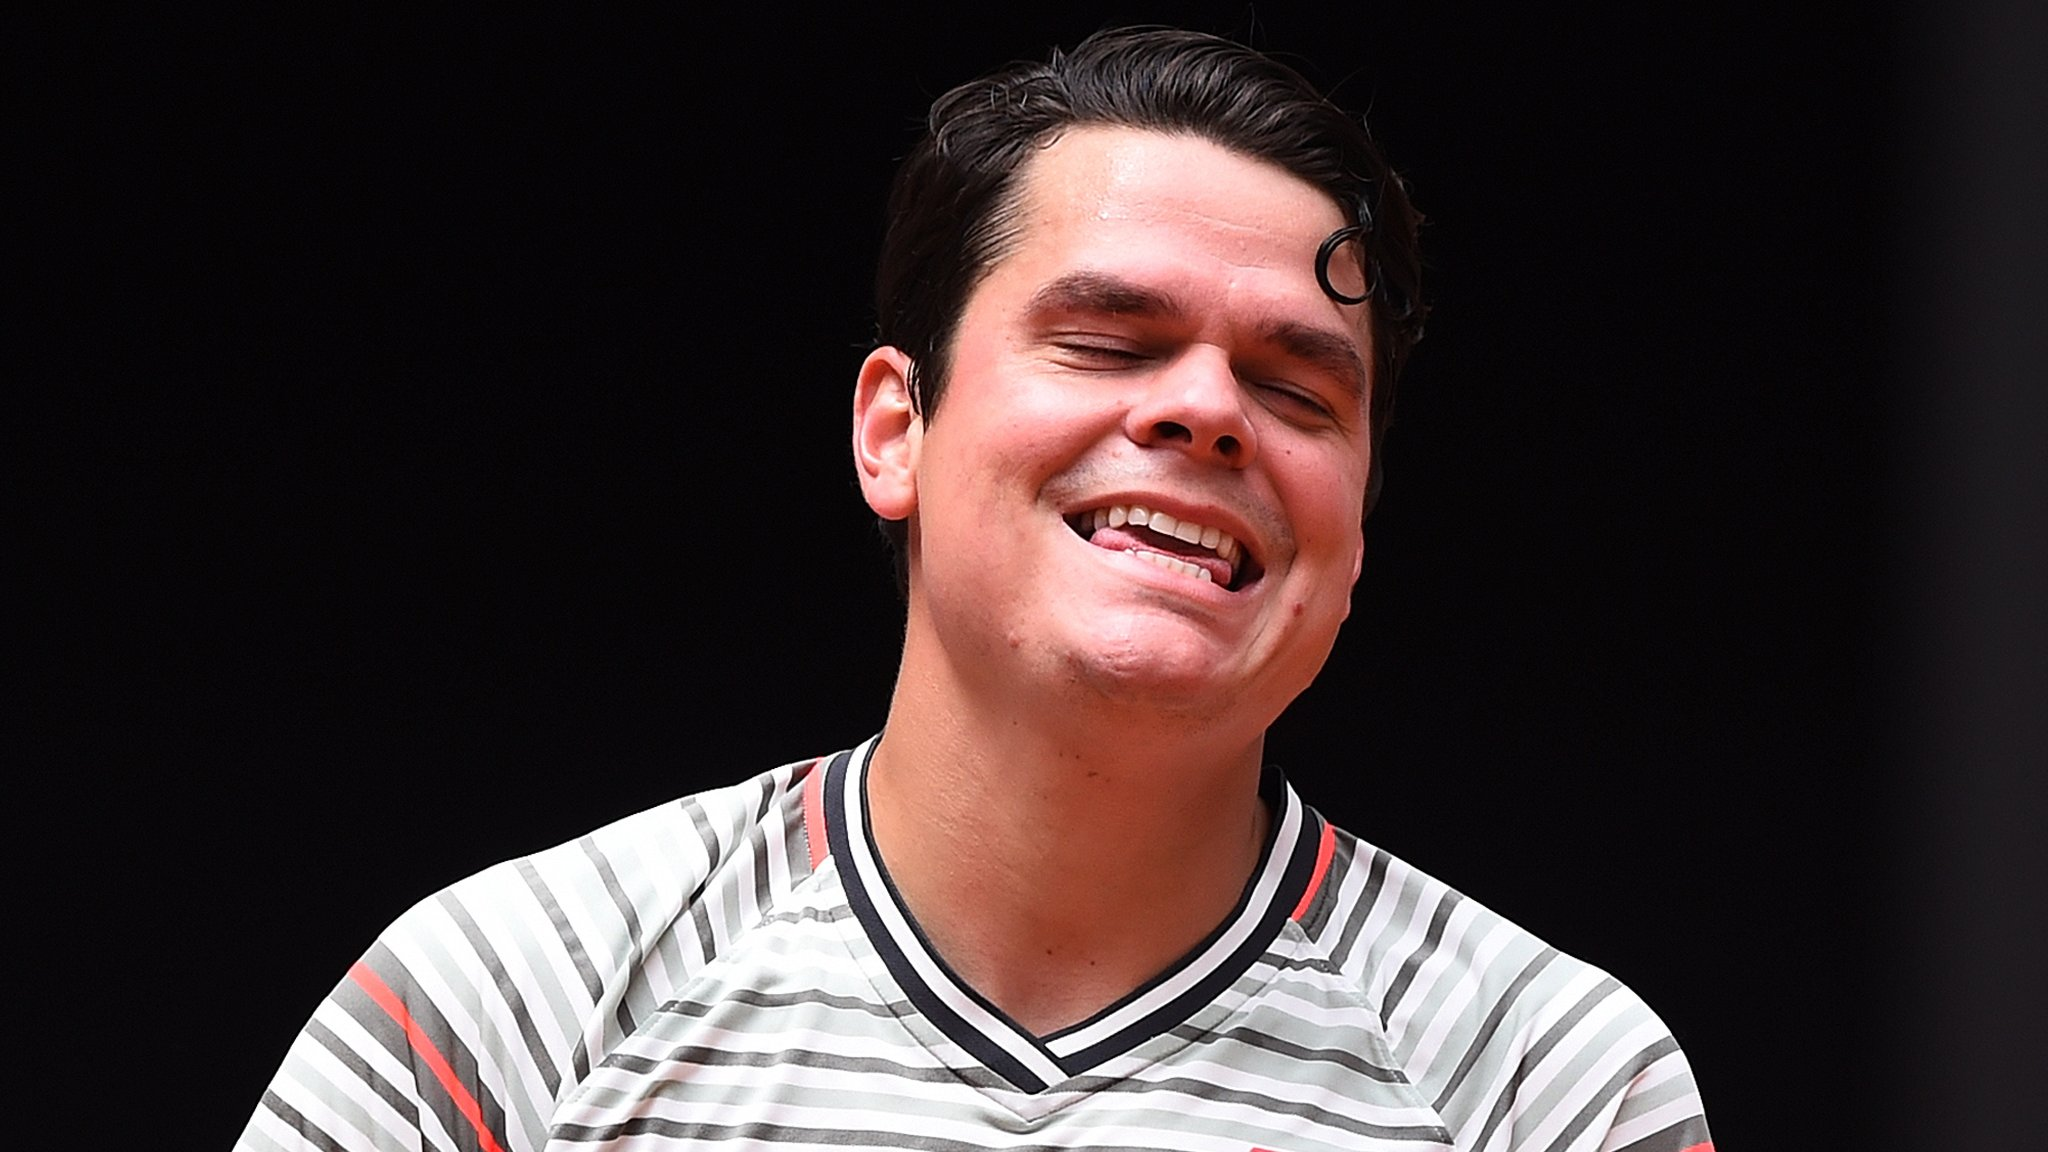 French Open: Milos Raonic pulls out of Roland Garros with injury